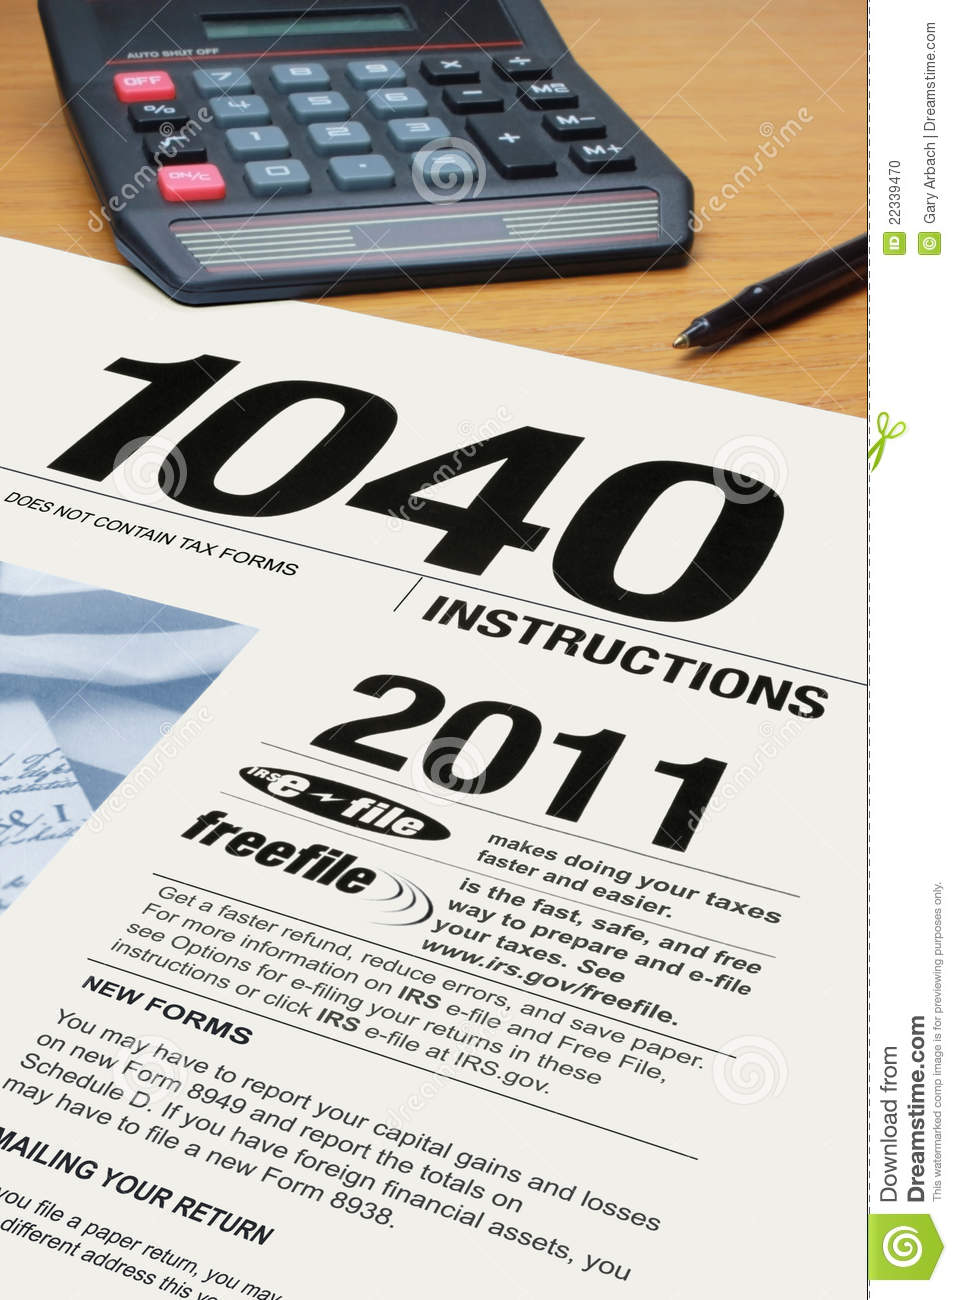 Form 1040 Income Tax Instructions Editorial Image - Image ...